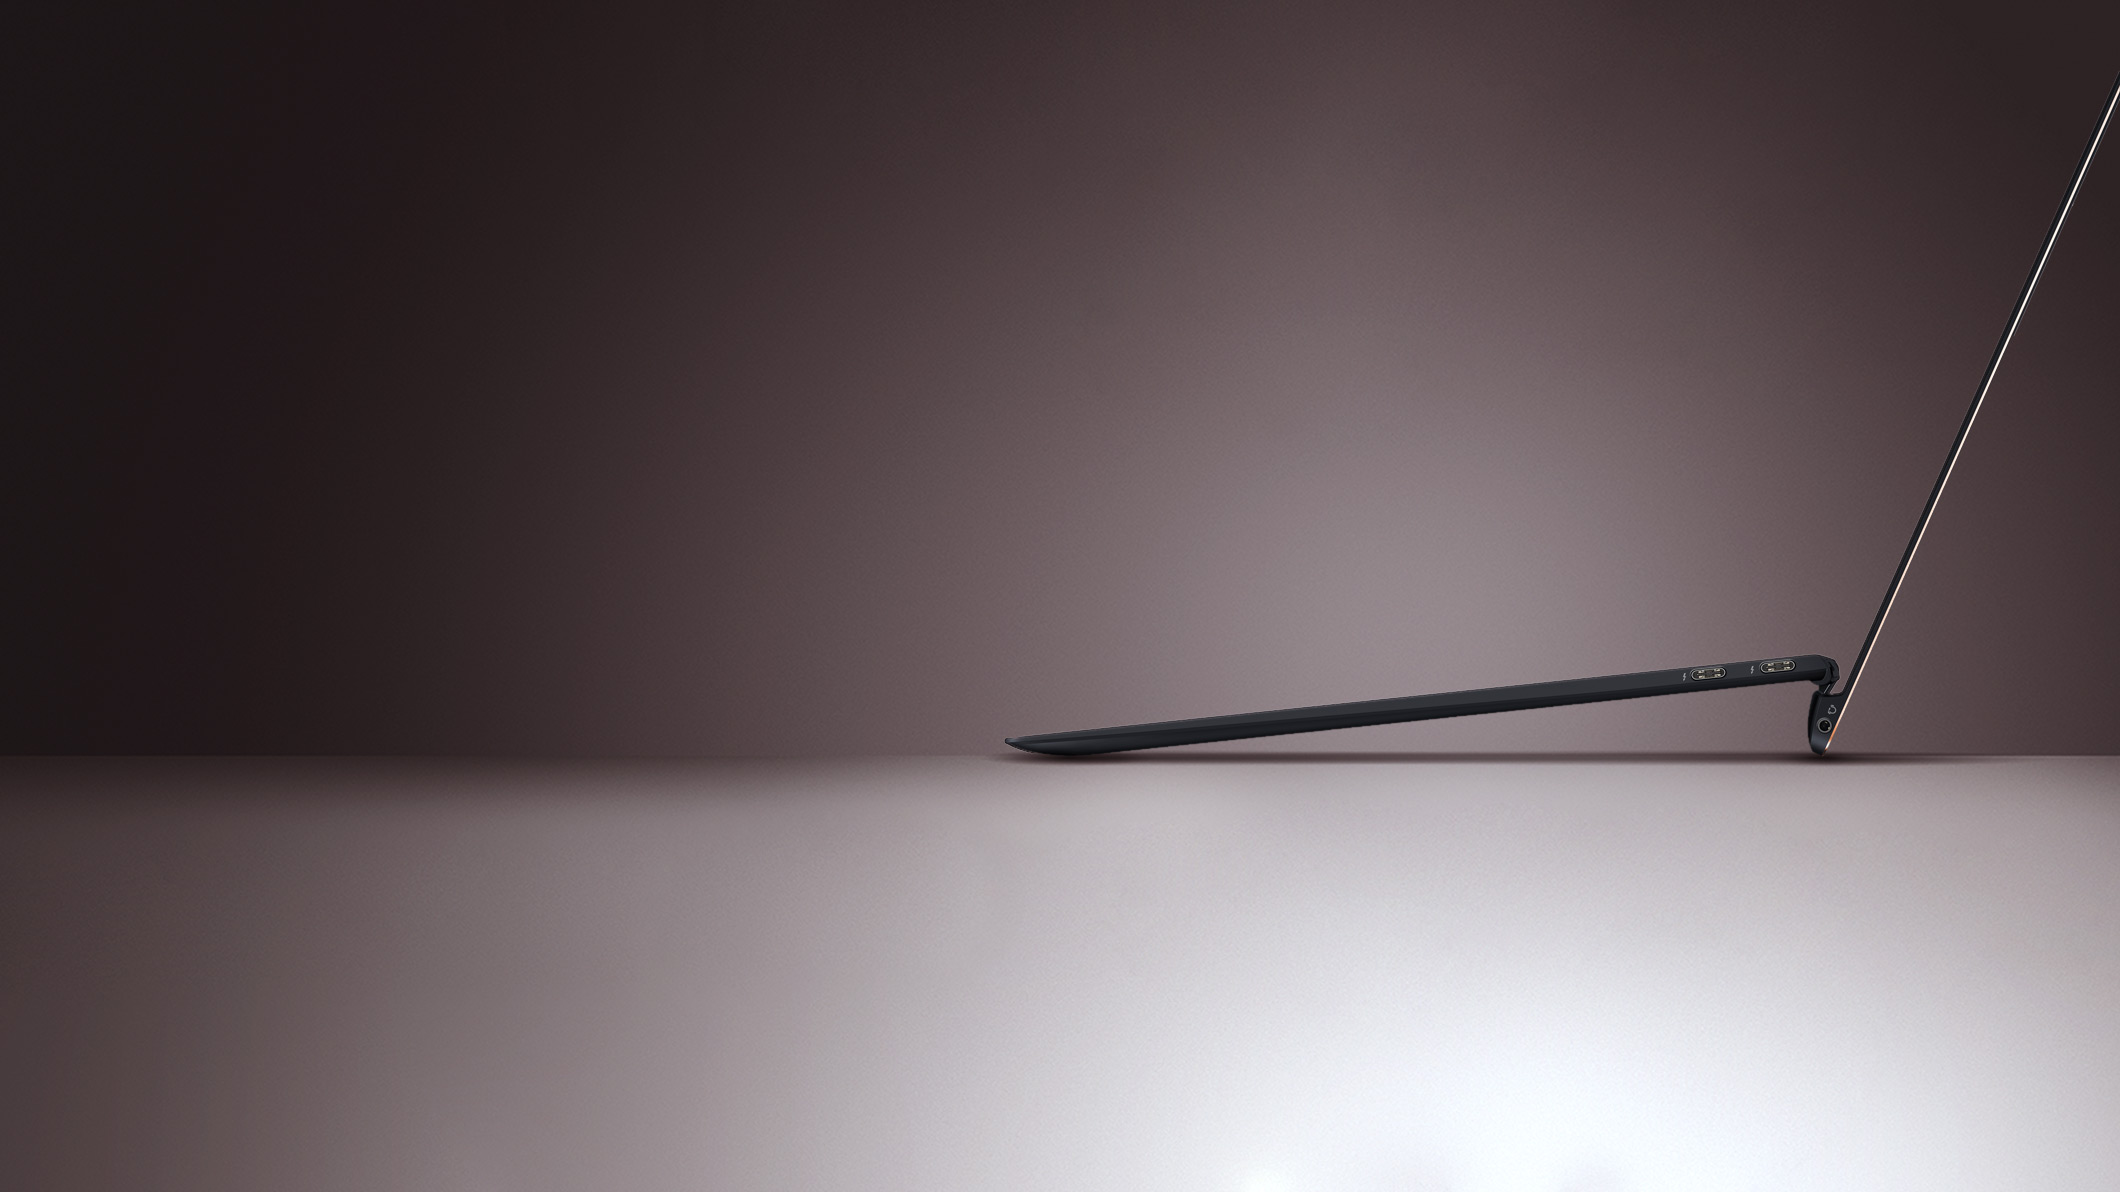 Side view of the ASUS ZenBook S UX391UA